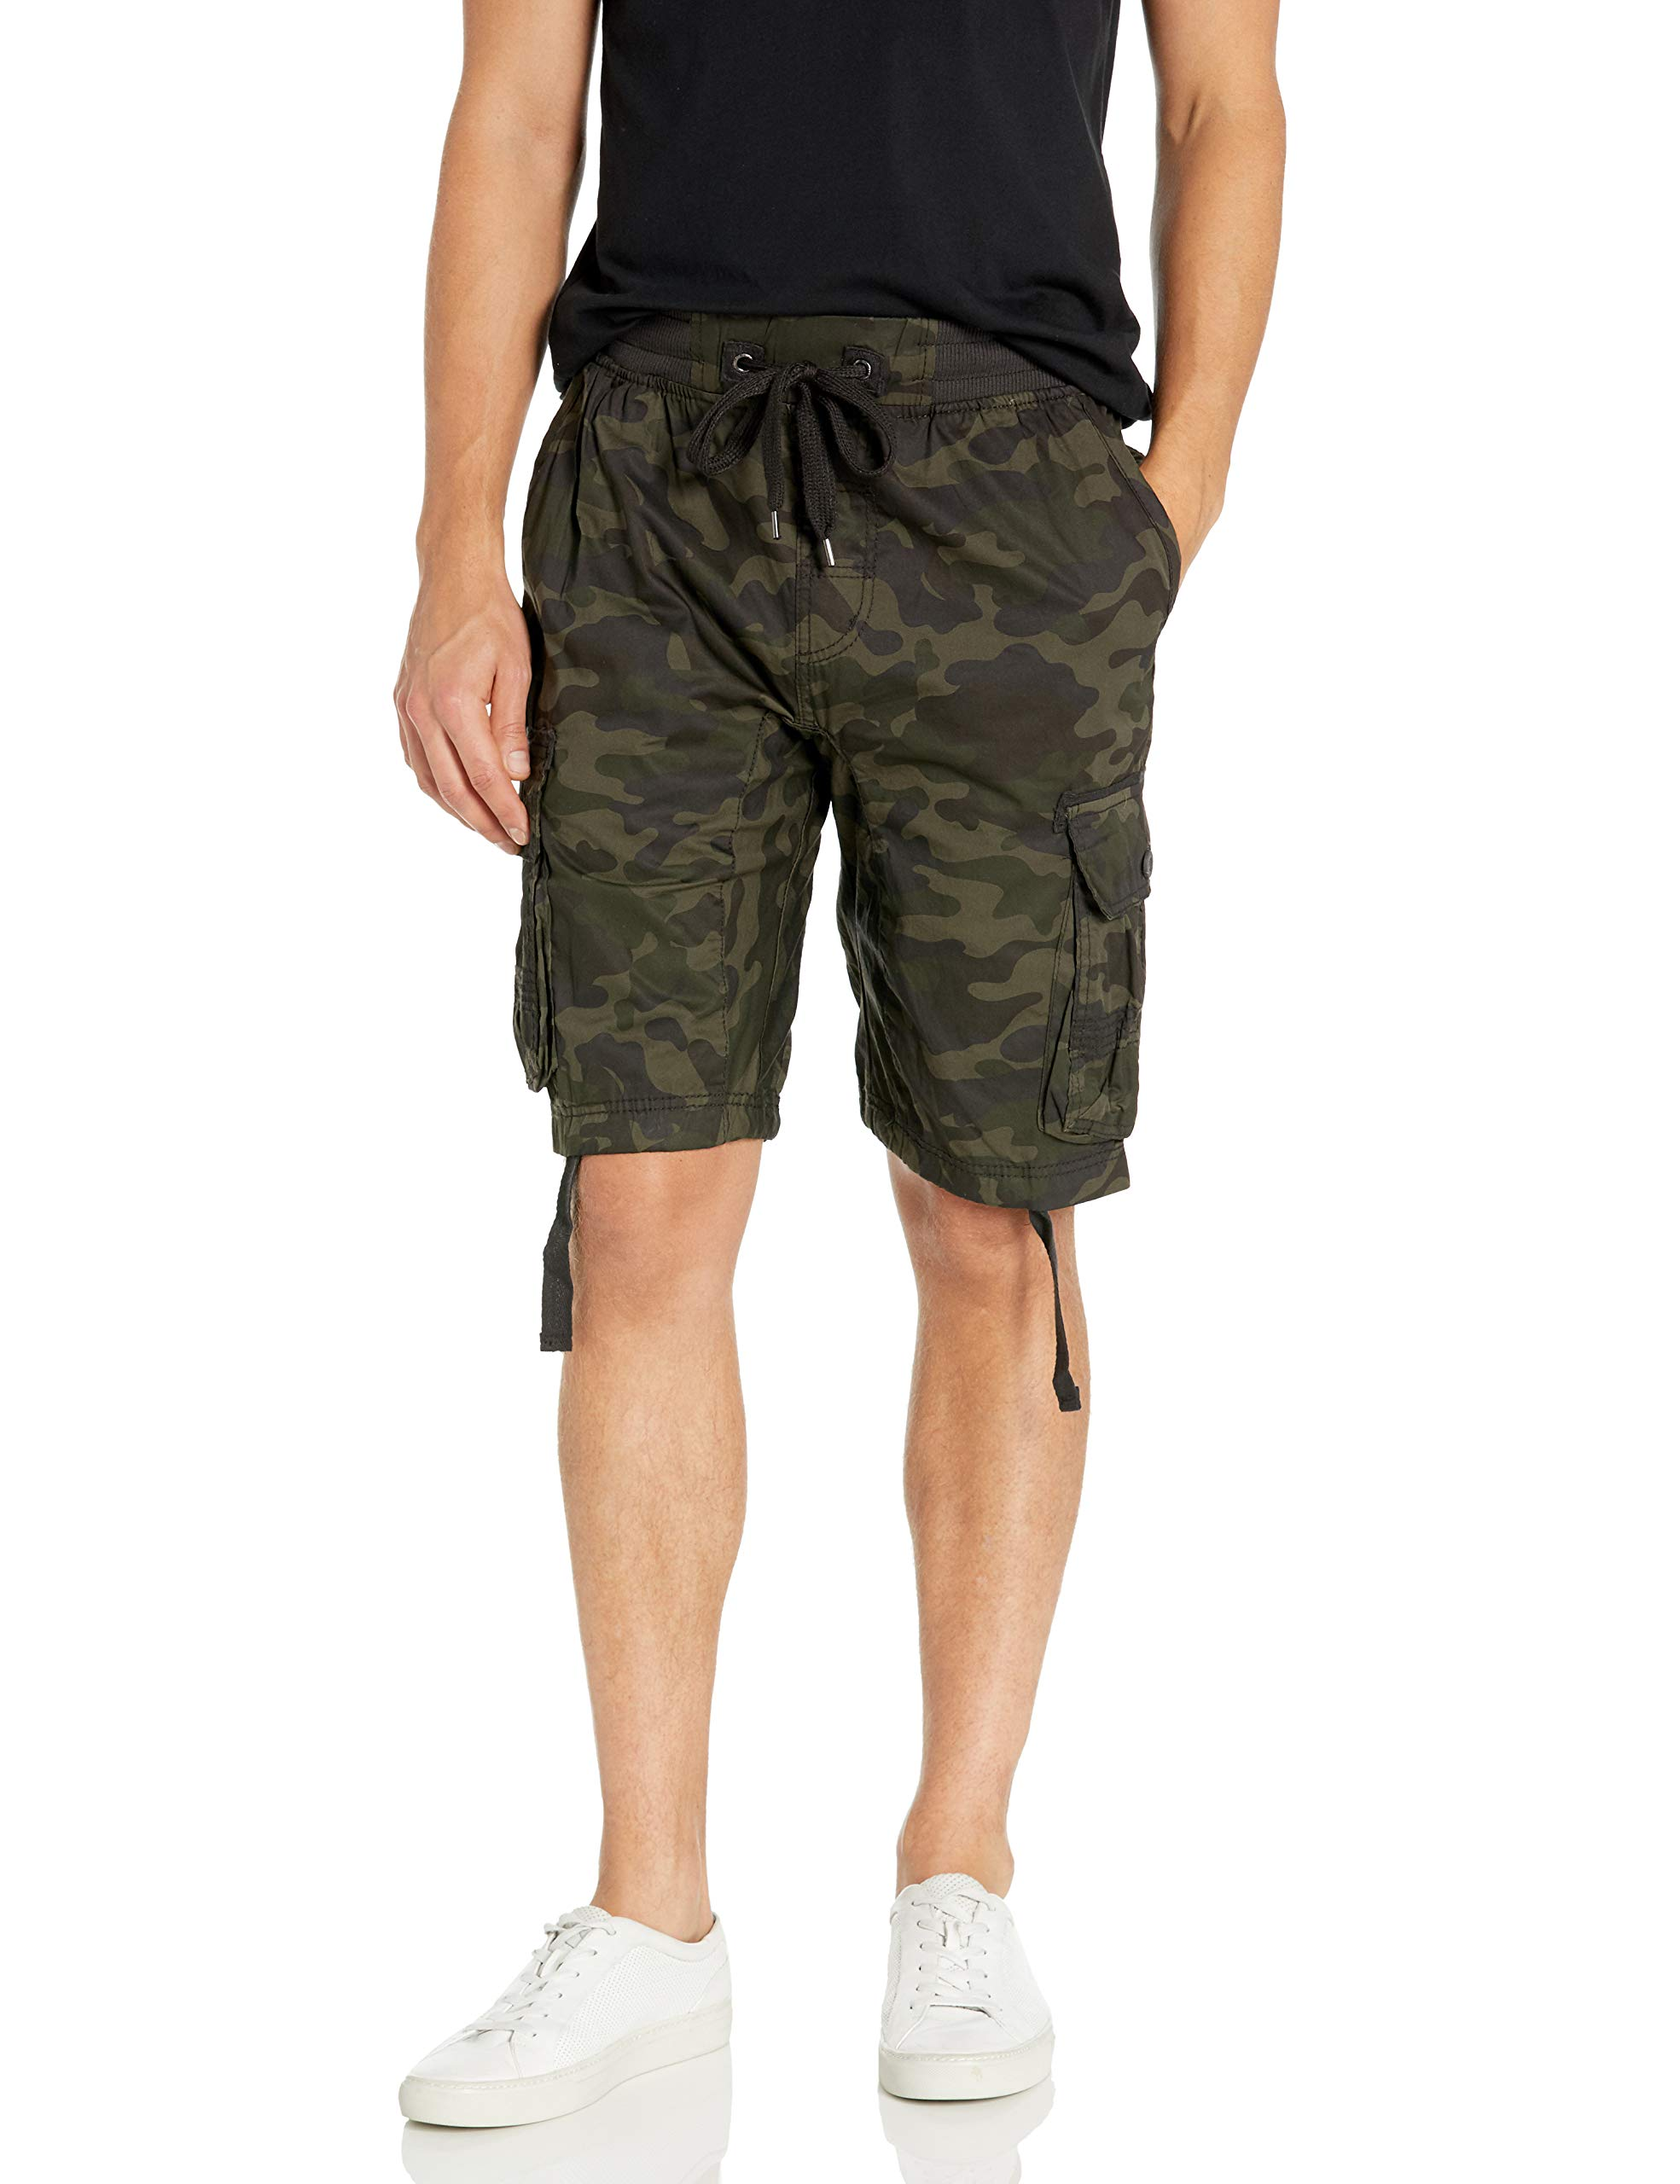 Southpole Men's Jogger Shorts with Cargo Pockets in Solid and Camo Colors